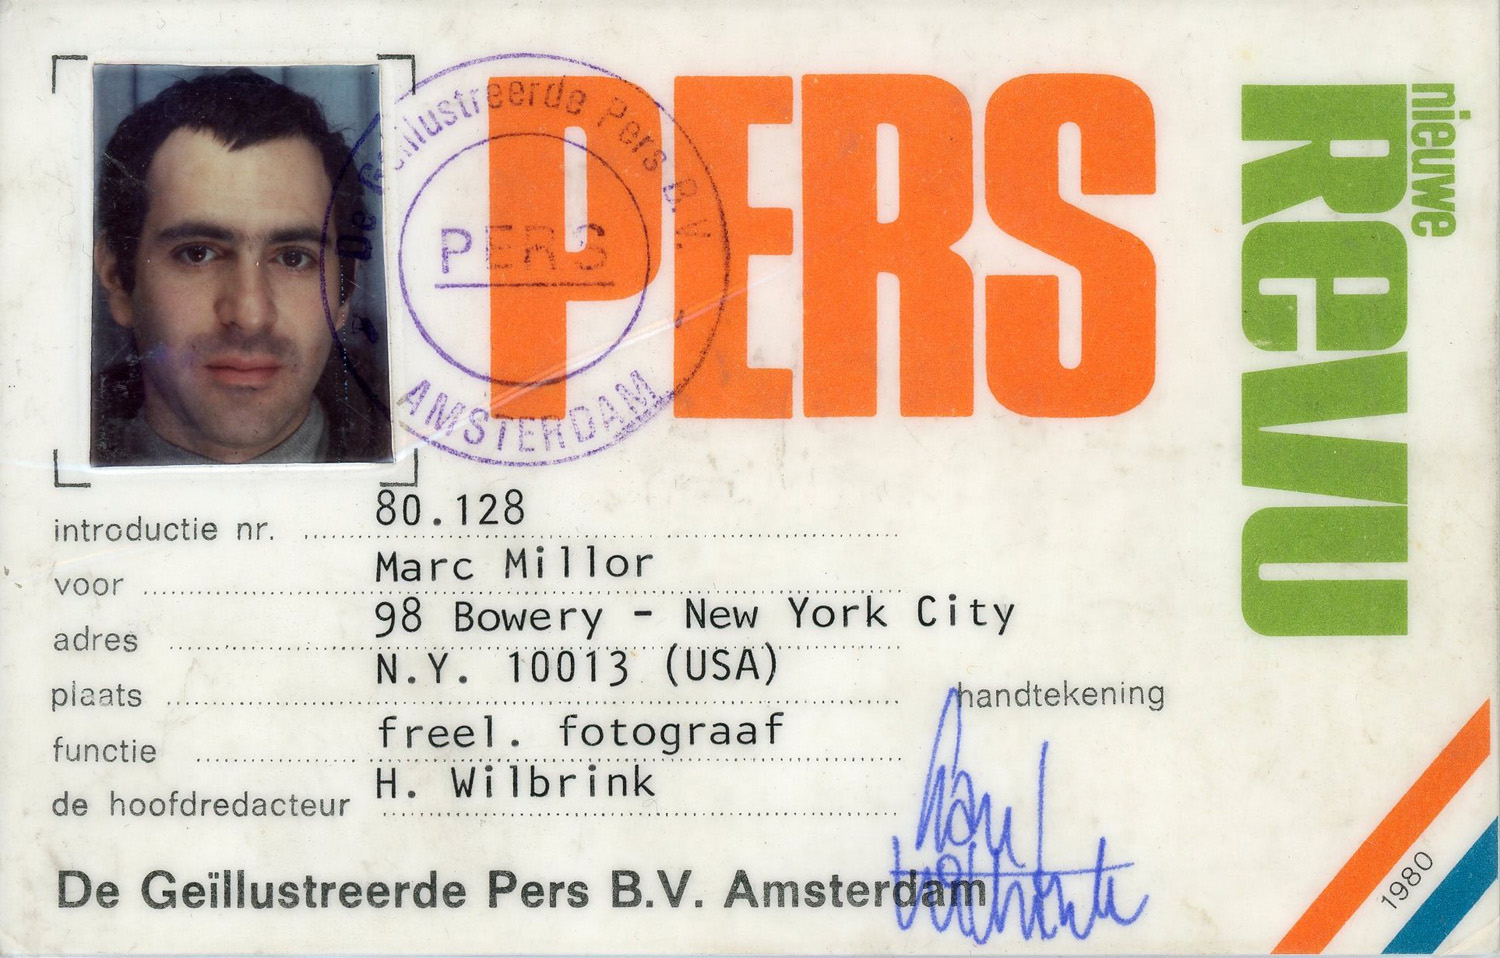 Press ID issued by the Nieuwe Revu, 1980